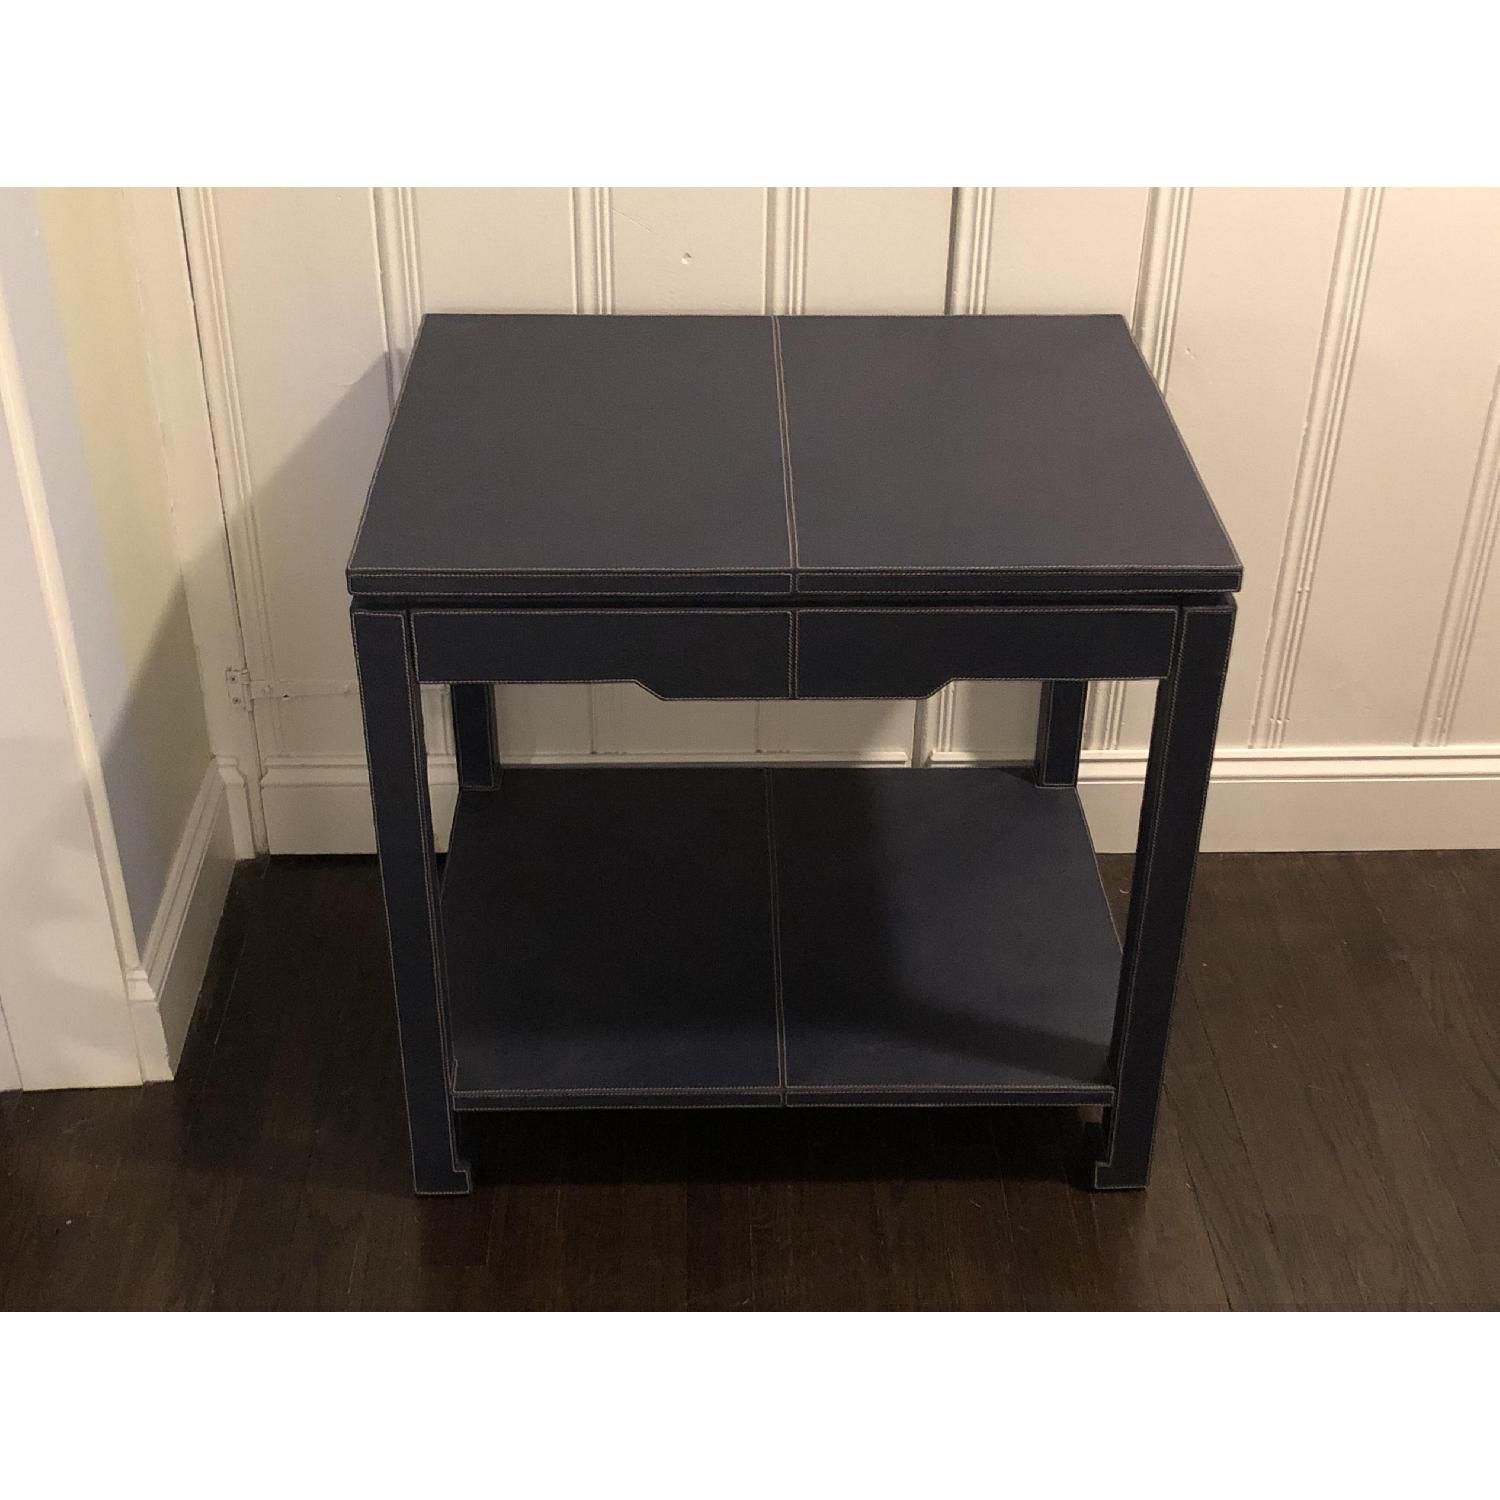 Jonathan Adler Mid-Century Modern Blue Leather Side Table - image-2